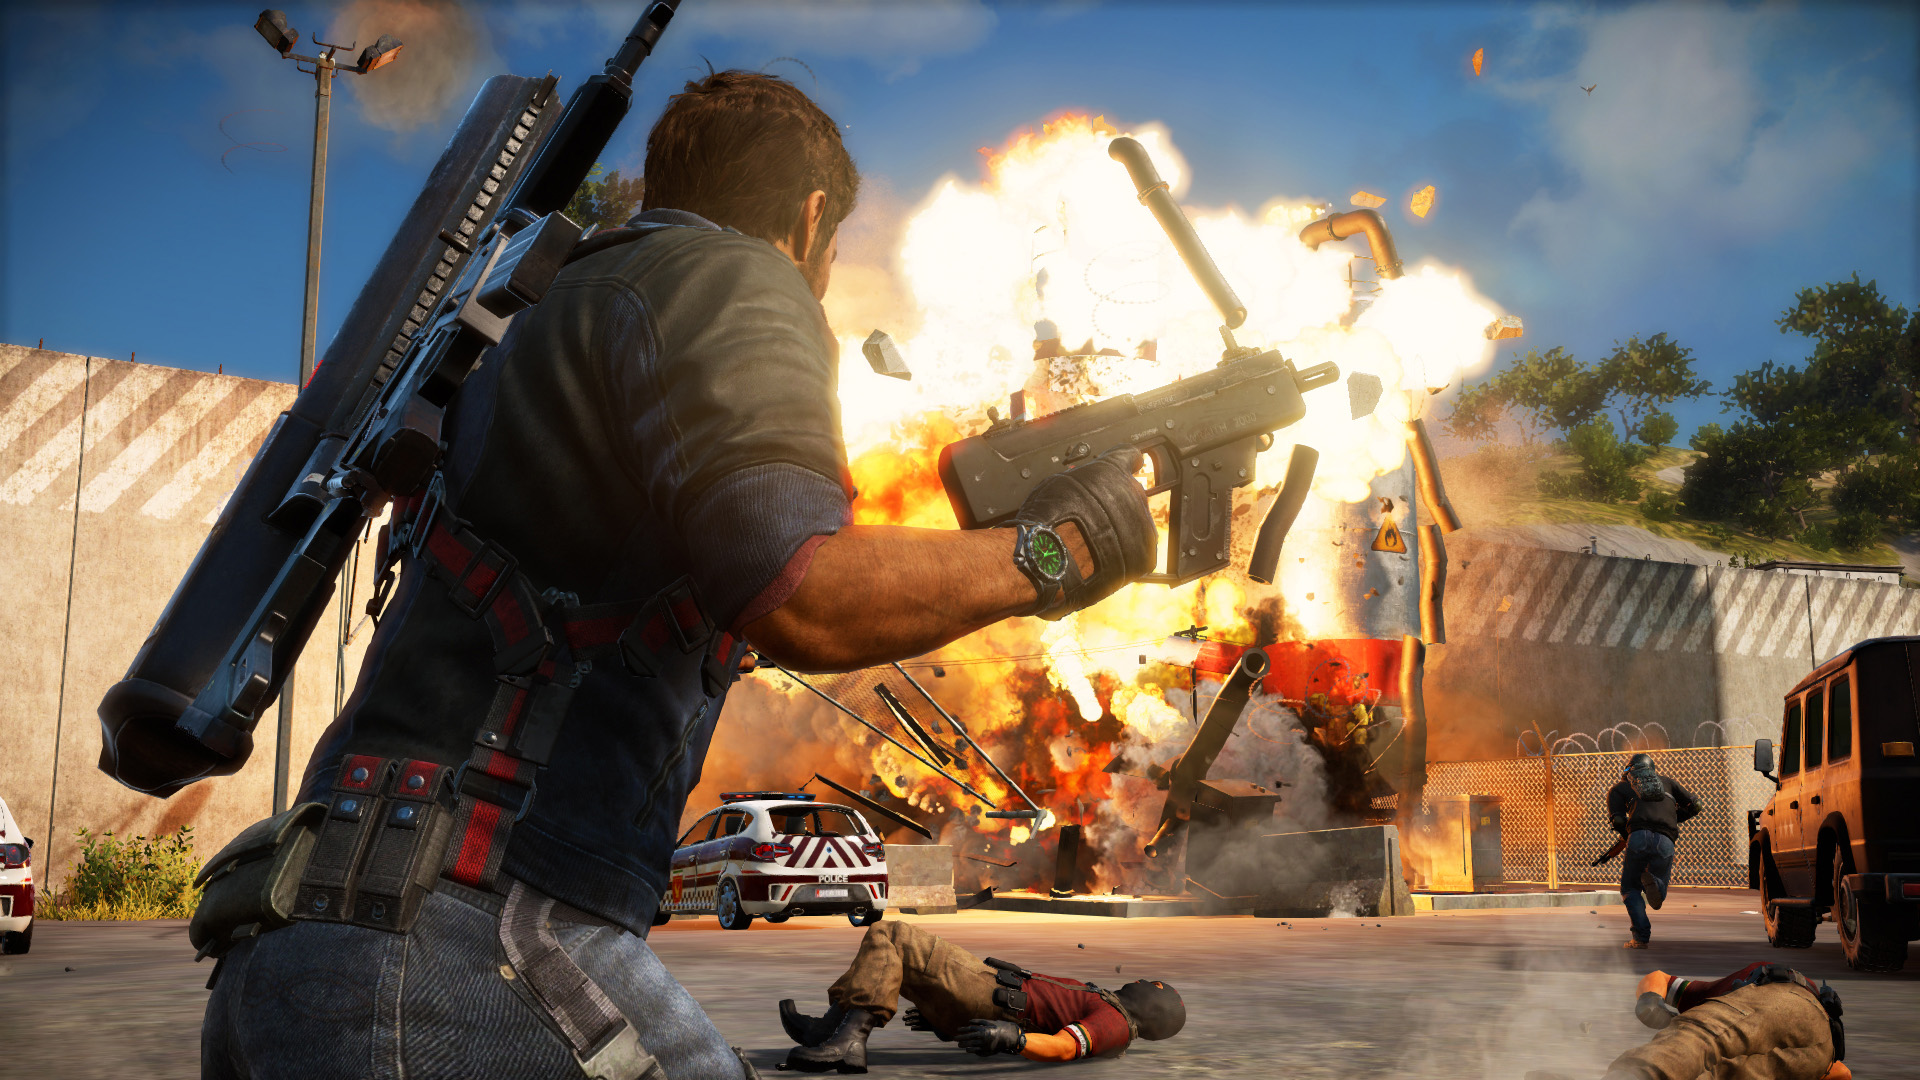 Just Cause 3 - it blows stuff up real good